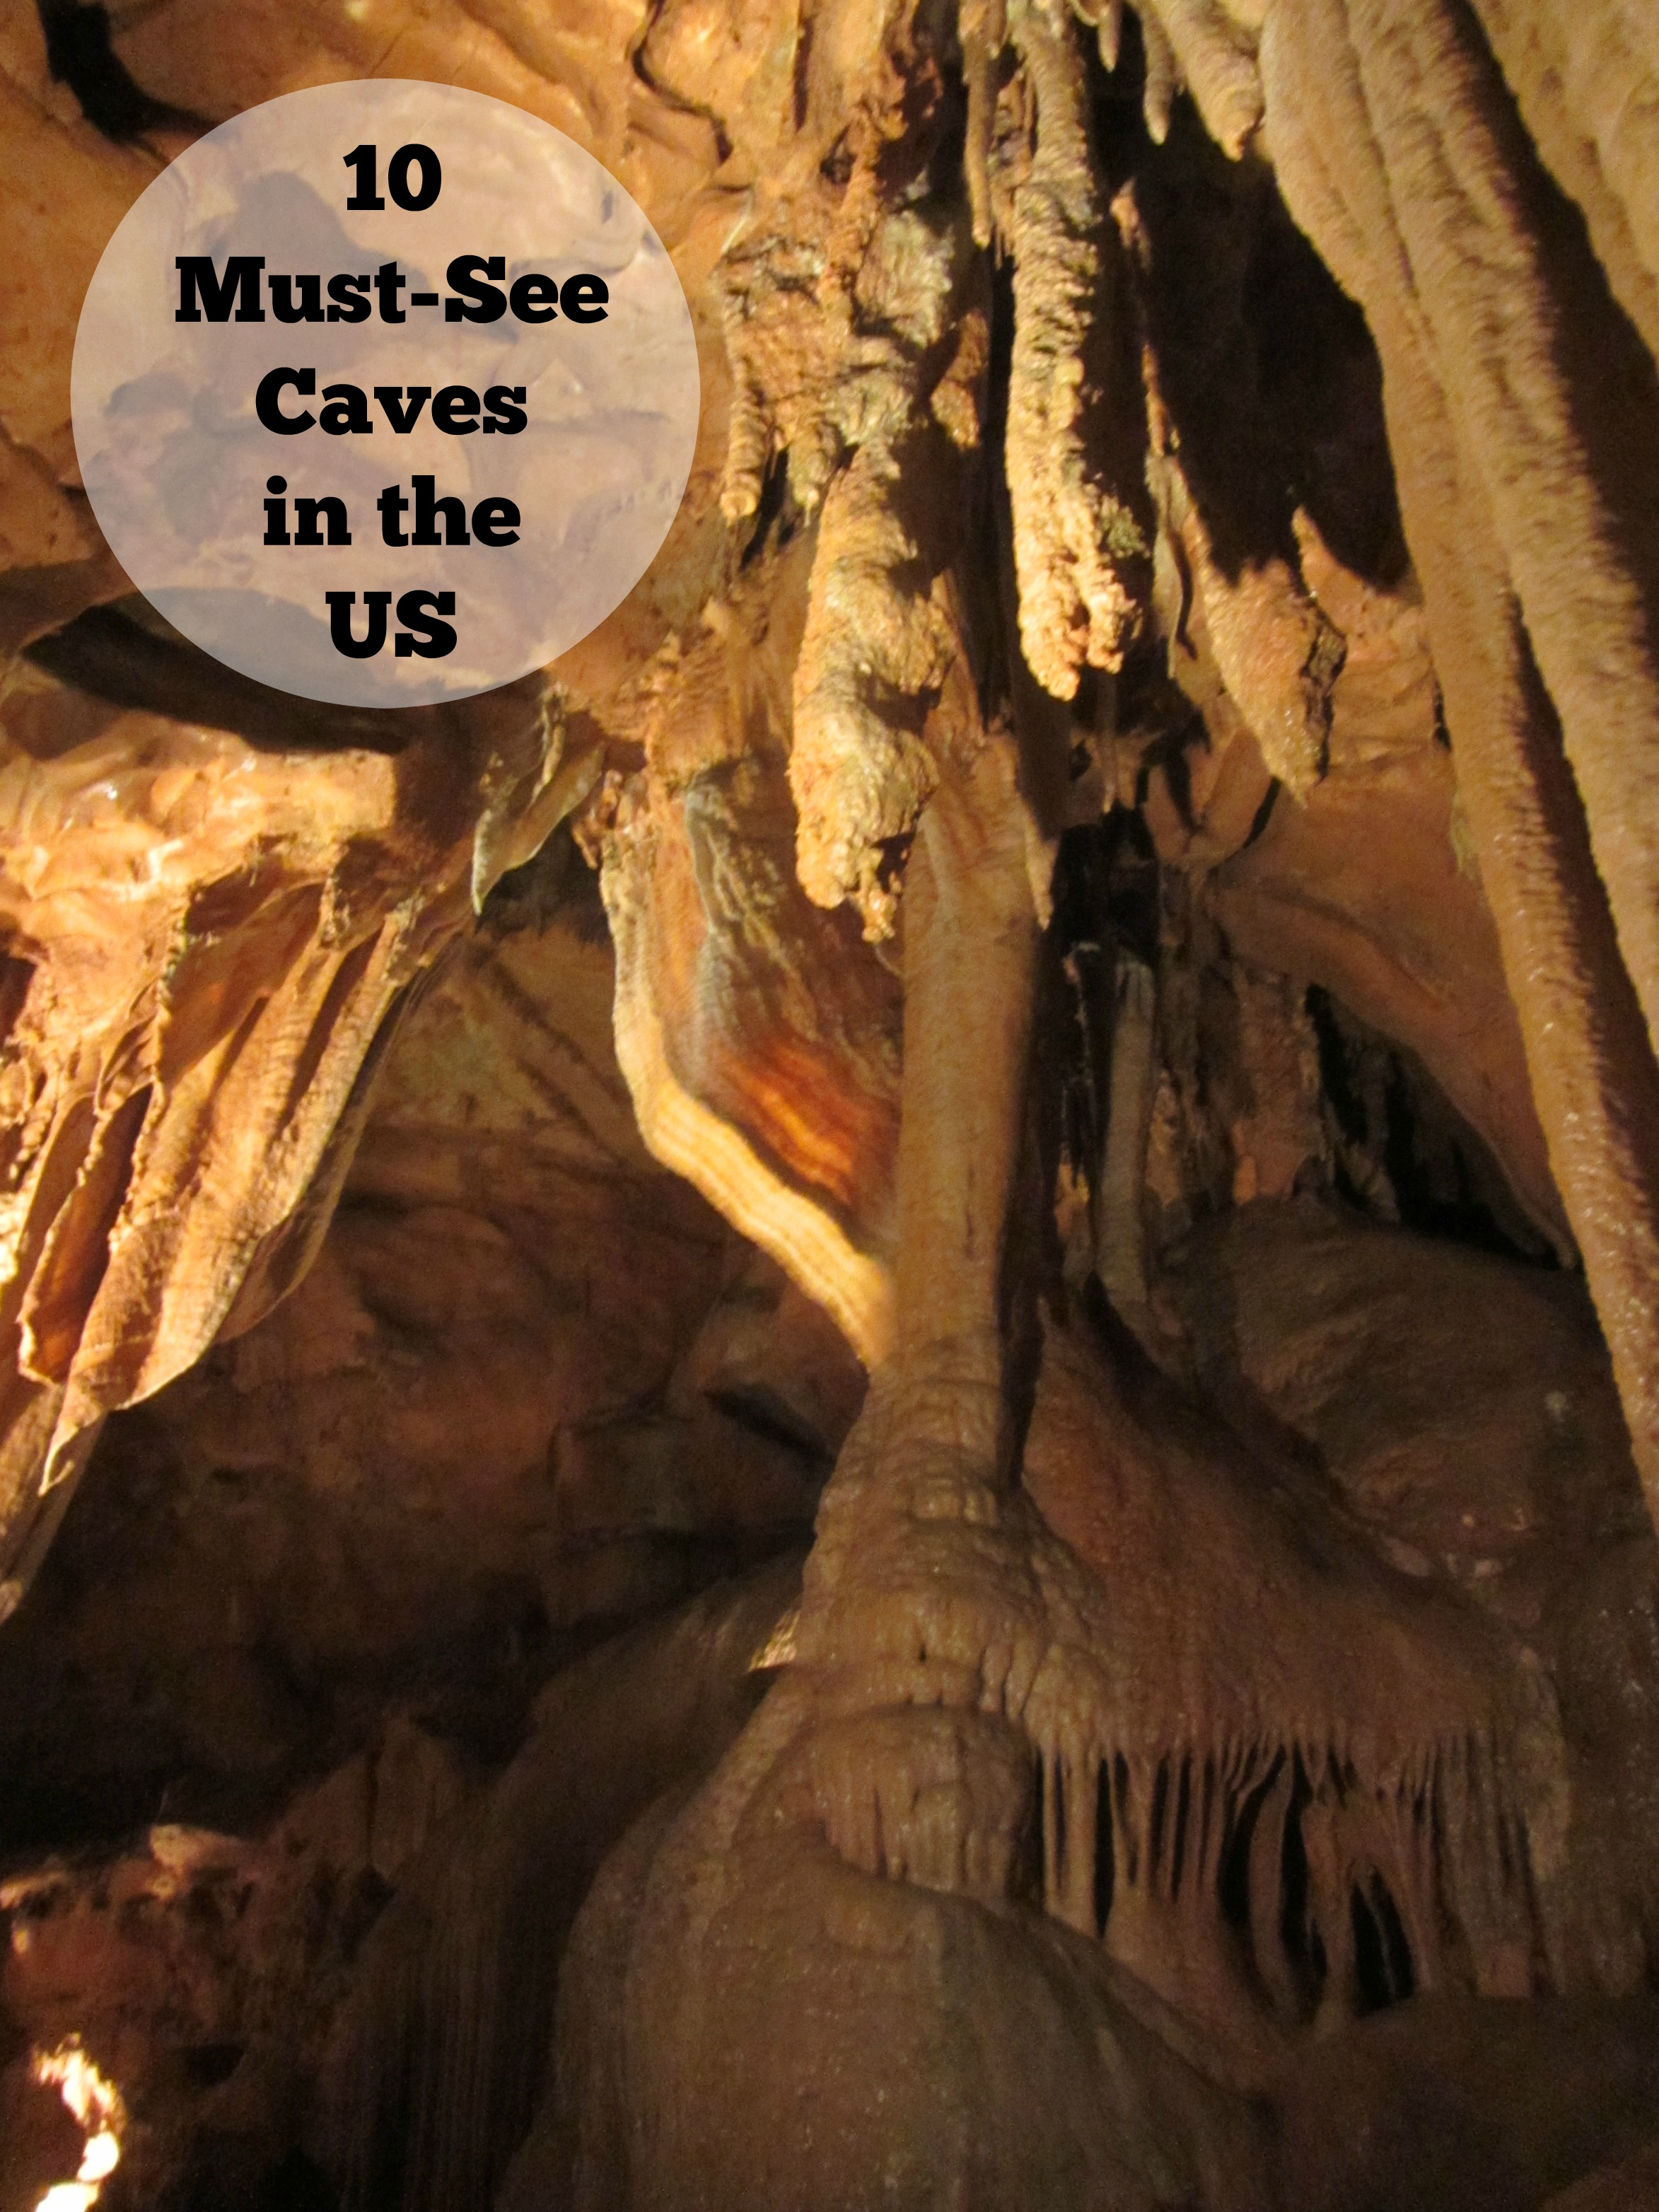 Must-see caves